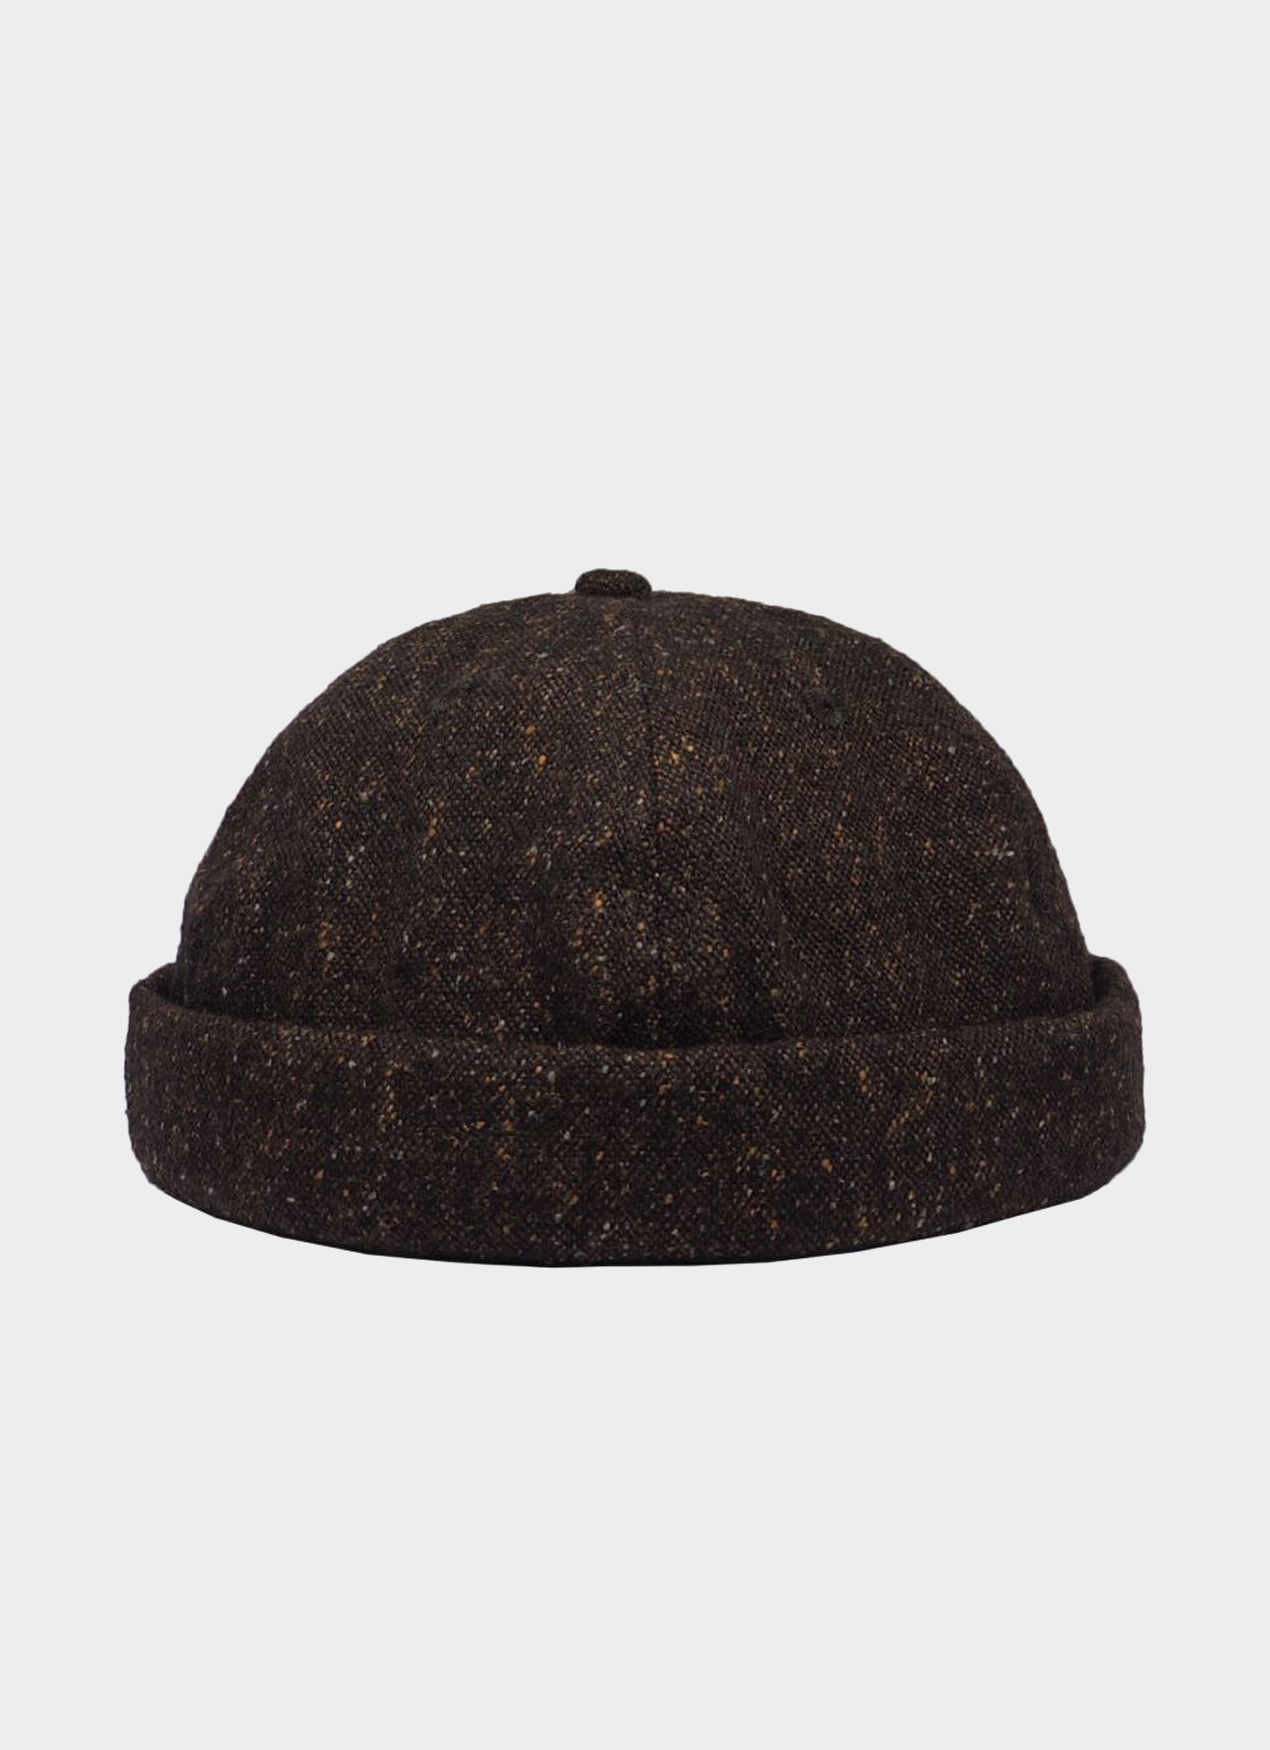 8df15115e50 Buy Original Cool Caps Tweed Black Beanie Cap at Indonesia